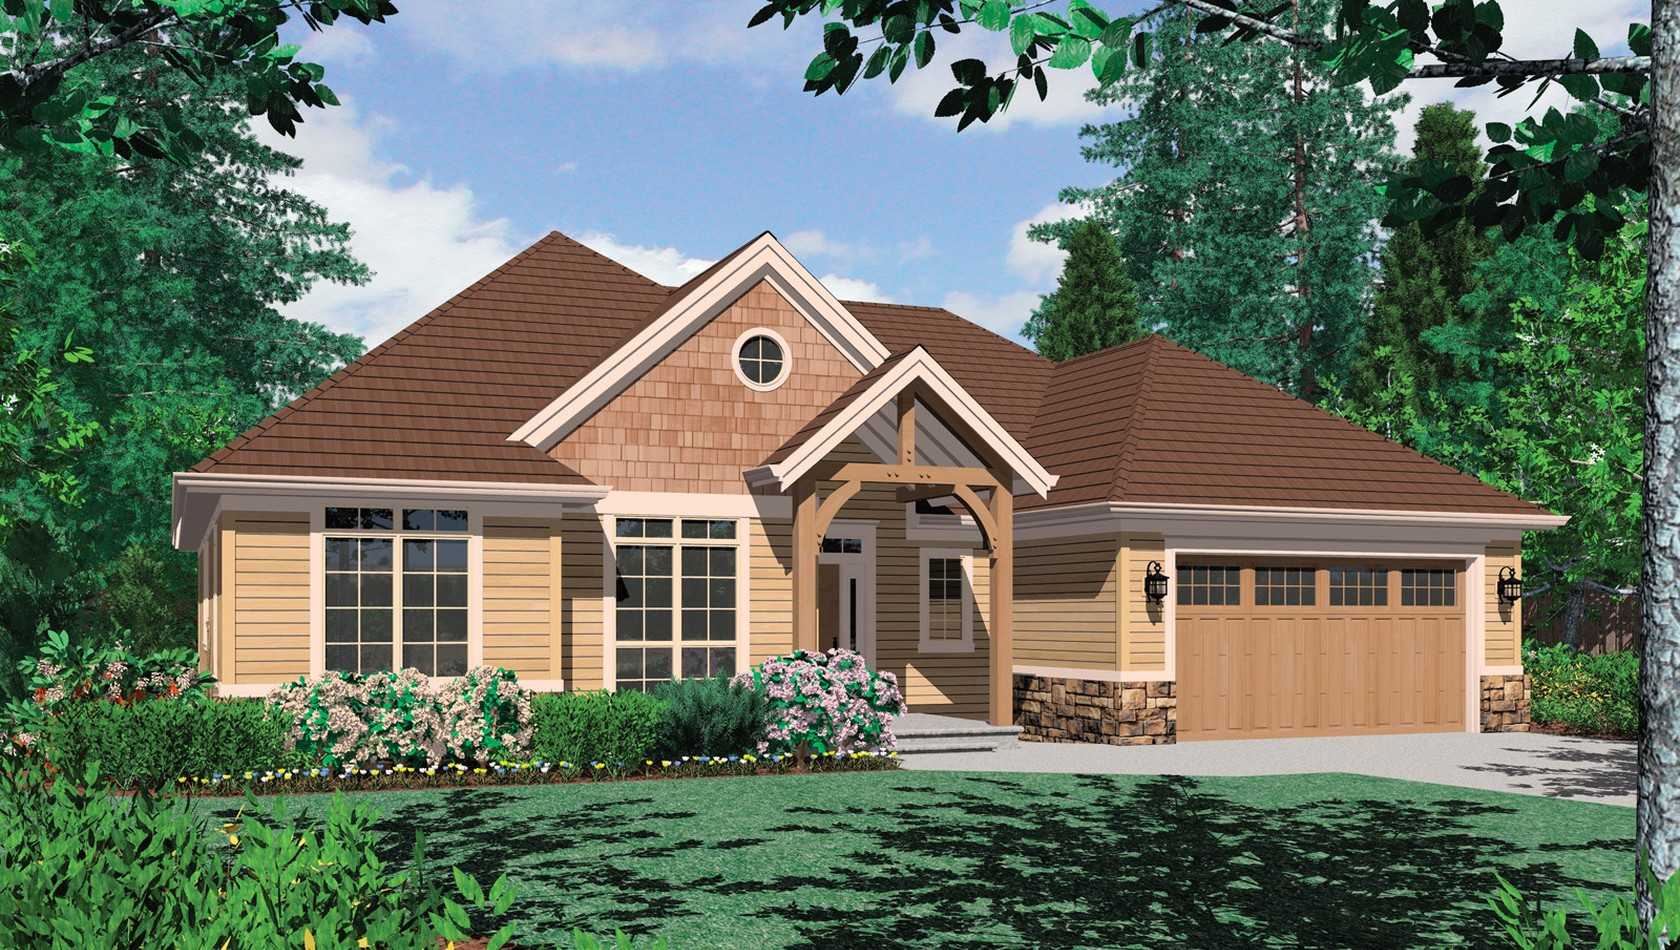 Main image for house plan B1149B: The Pendleton